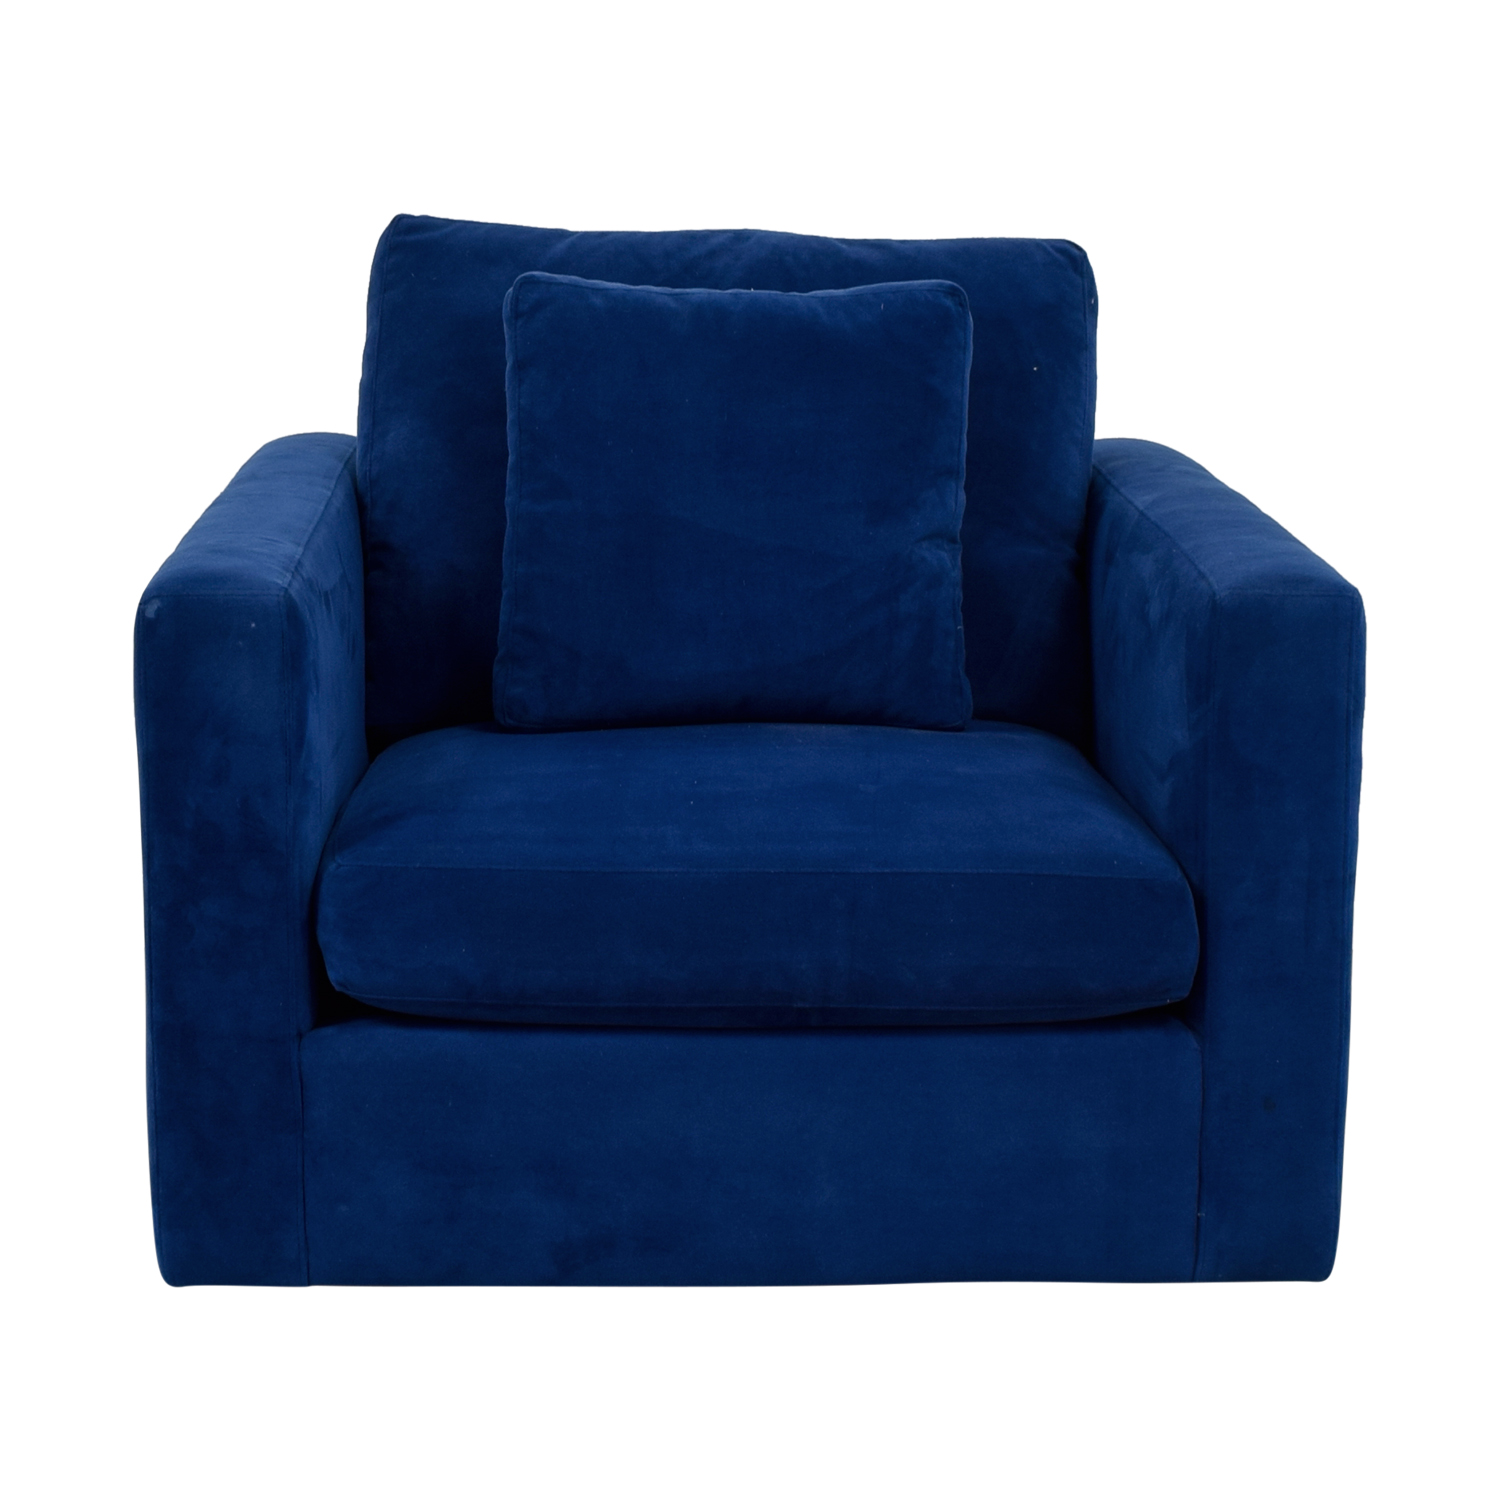 Blue Arm Chair with Toss Pillow nj